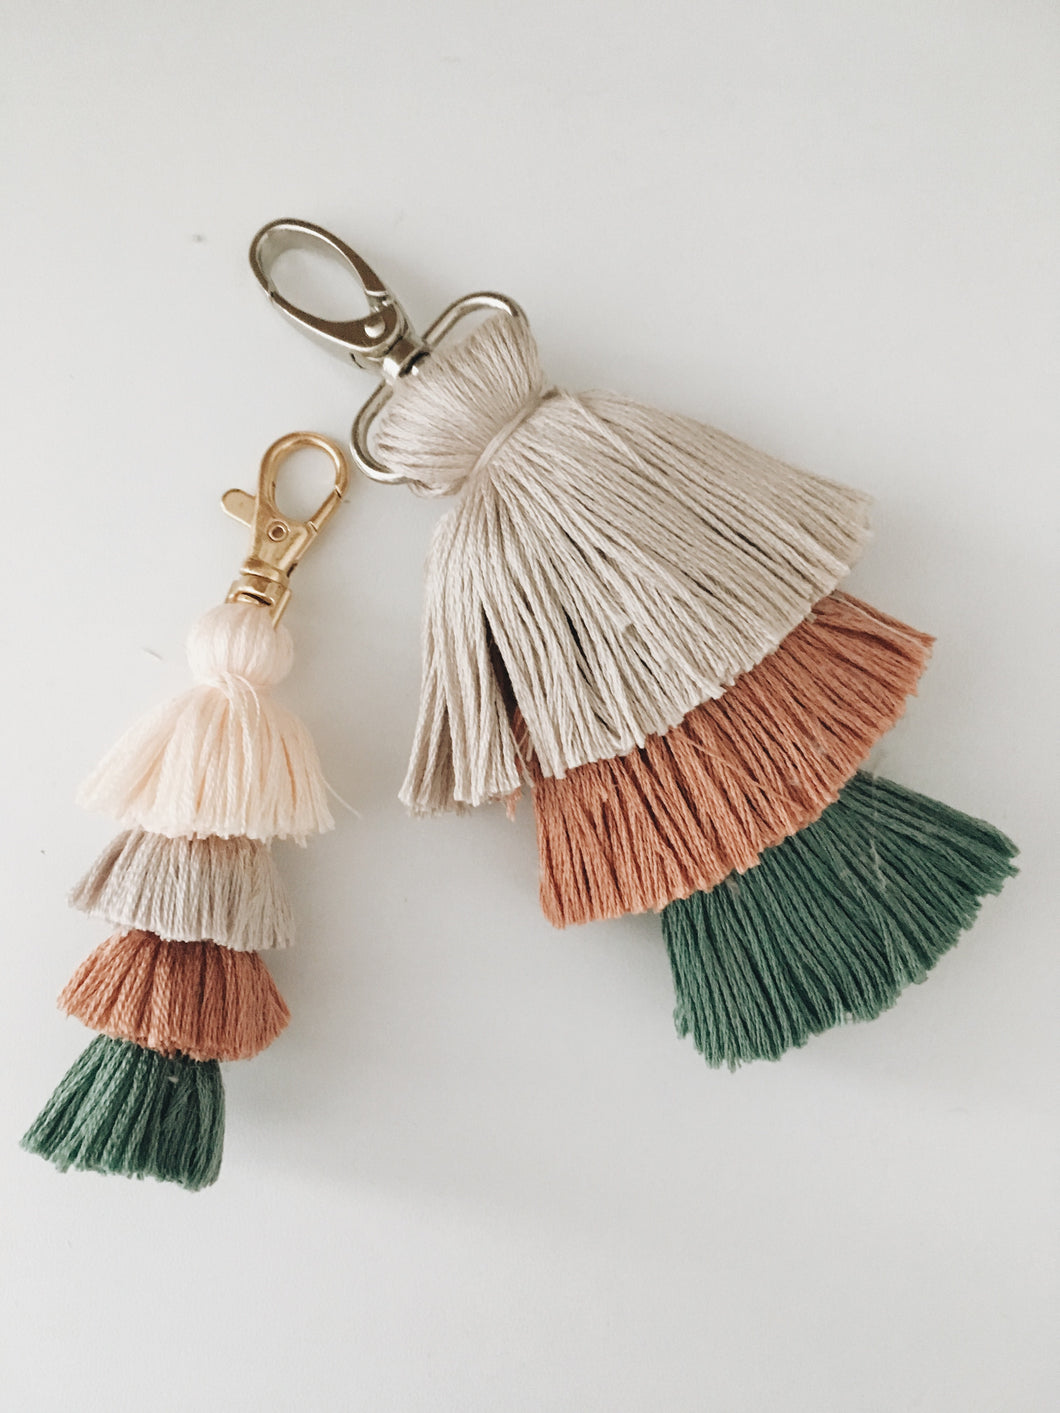 Mermaid Tassels